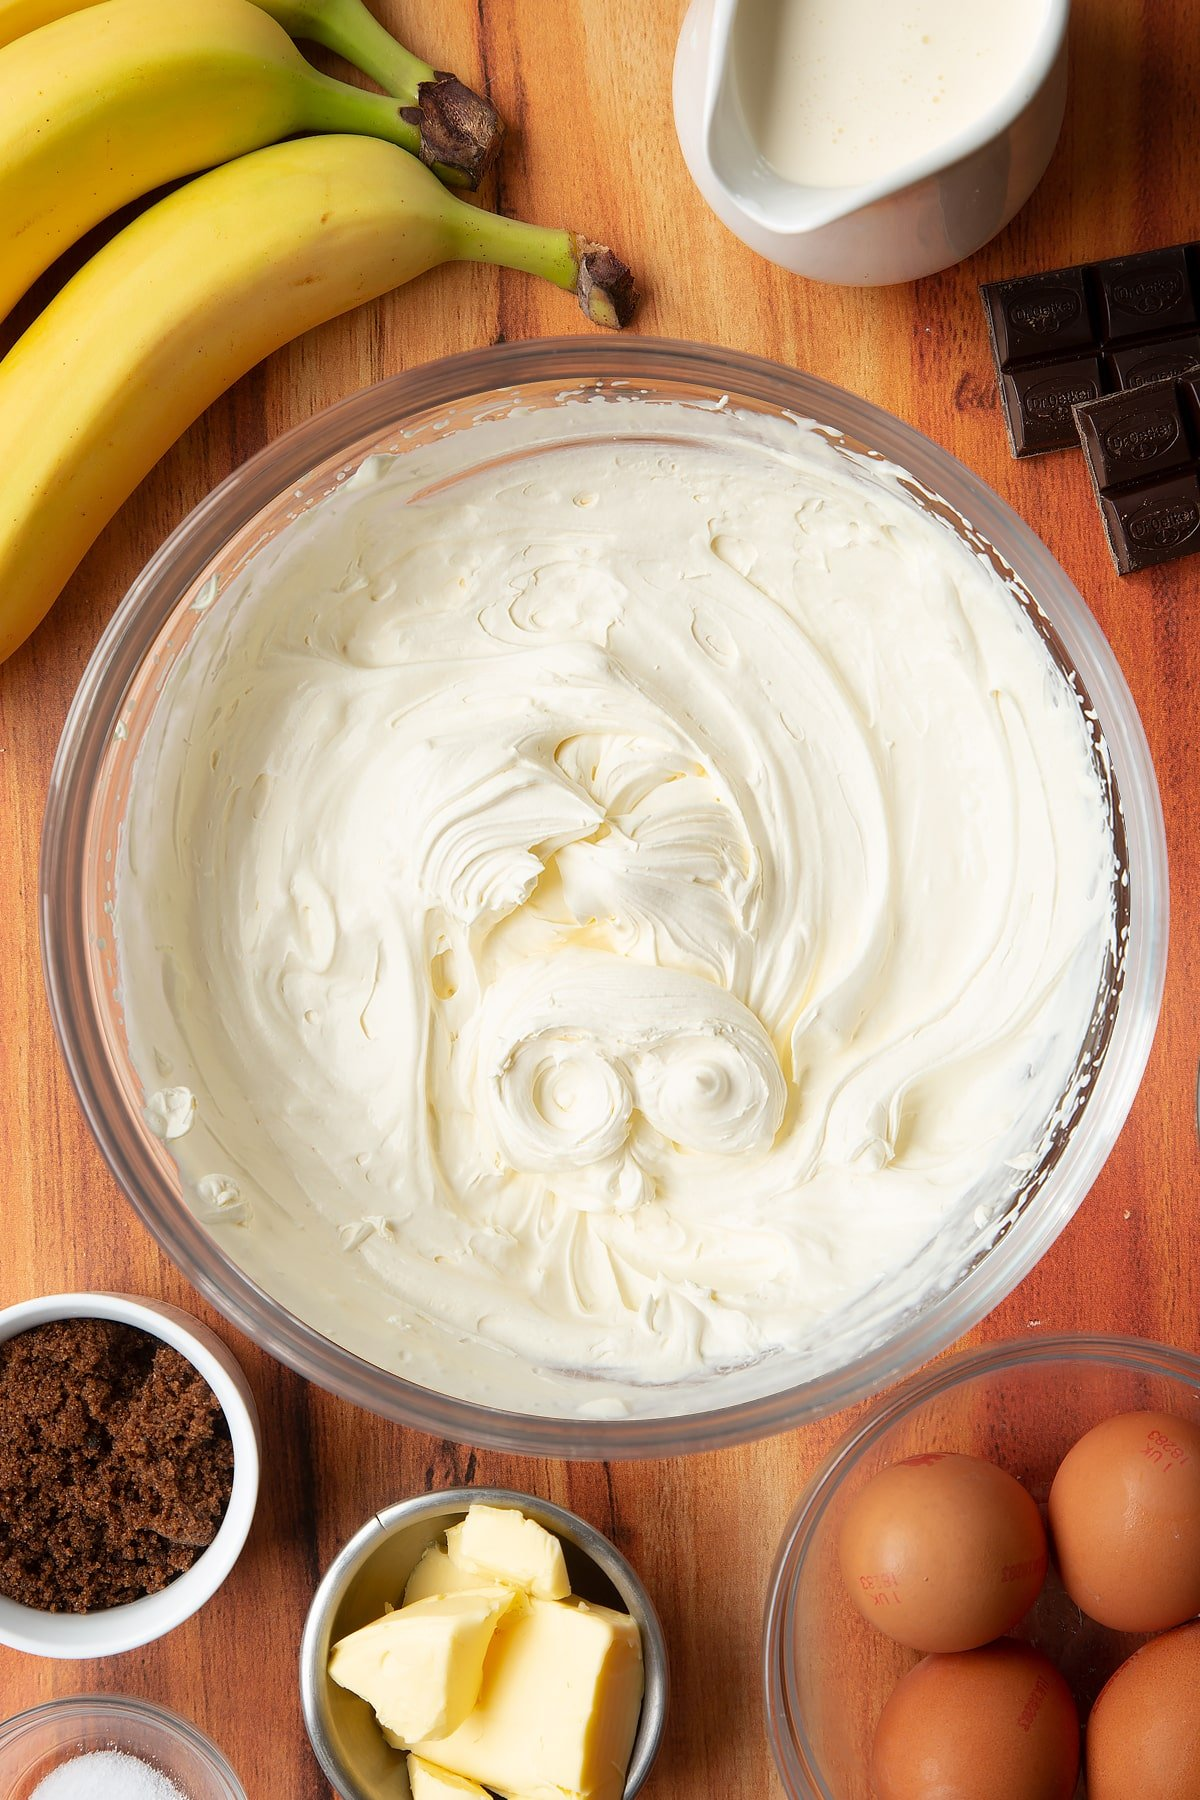 Whipped cream mixed in a mixing bowl.